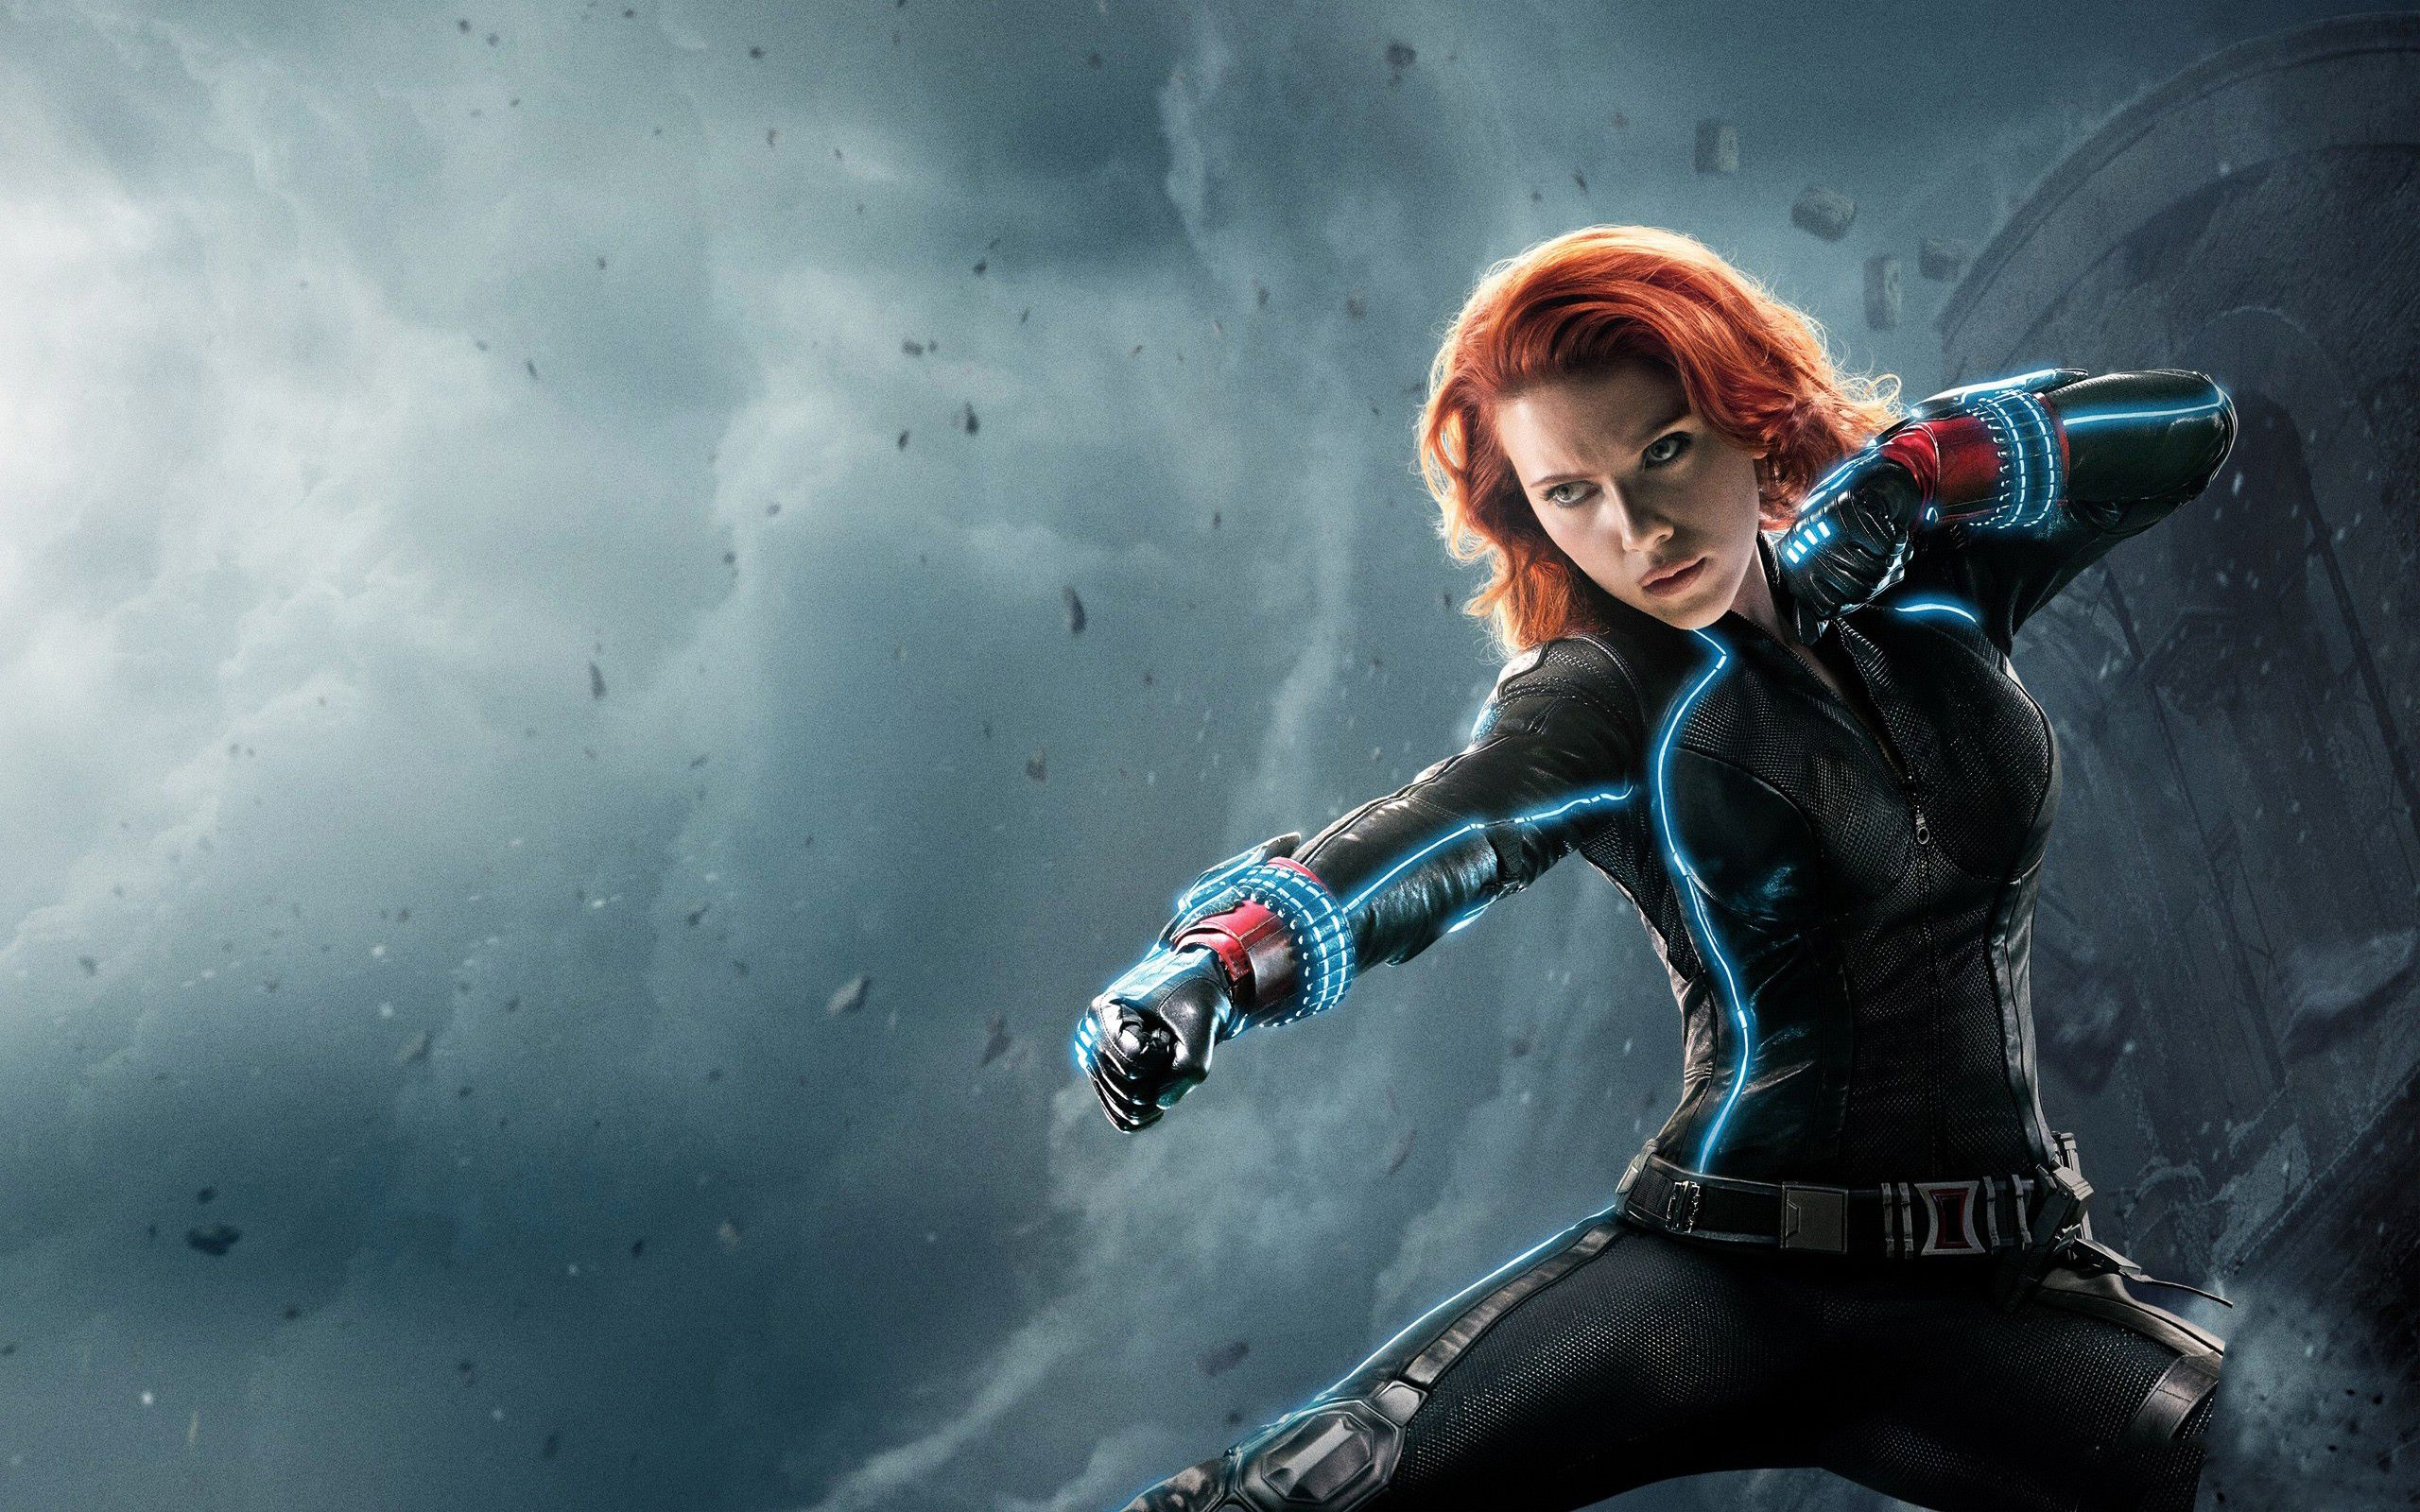 black widow marvel avengers natalia romanova hd wallpaper